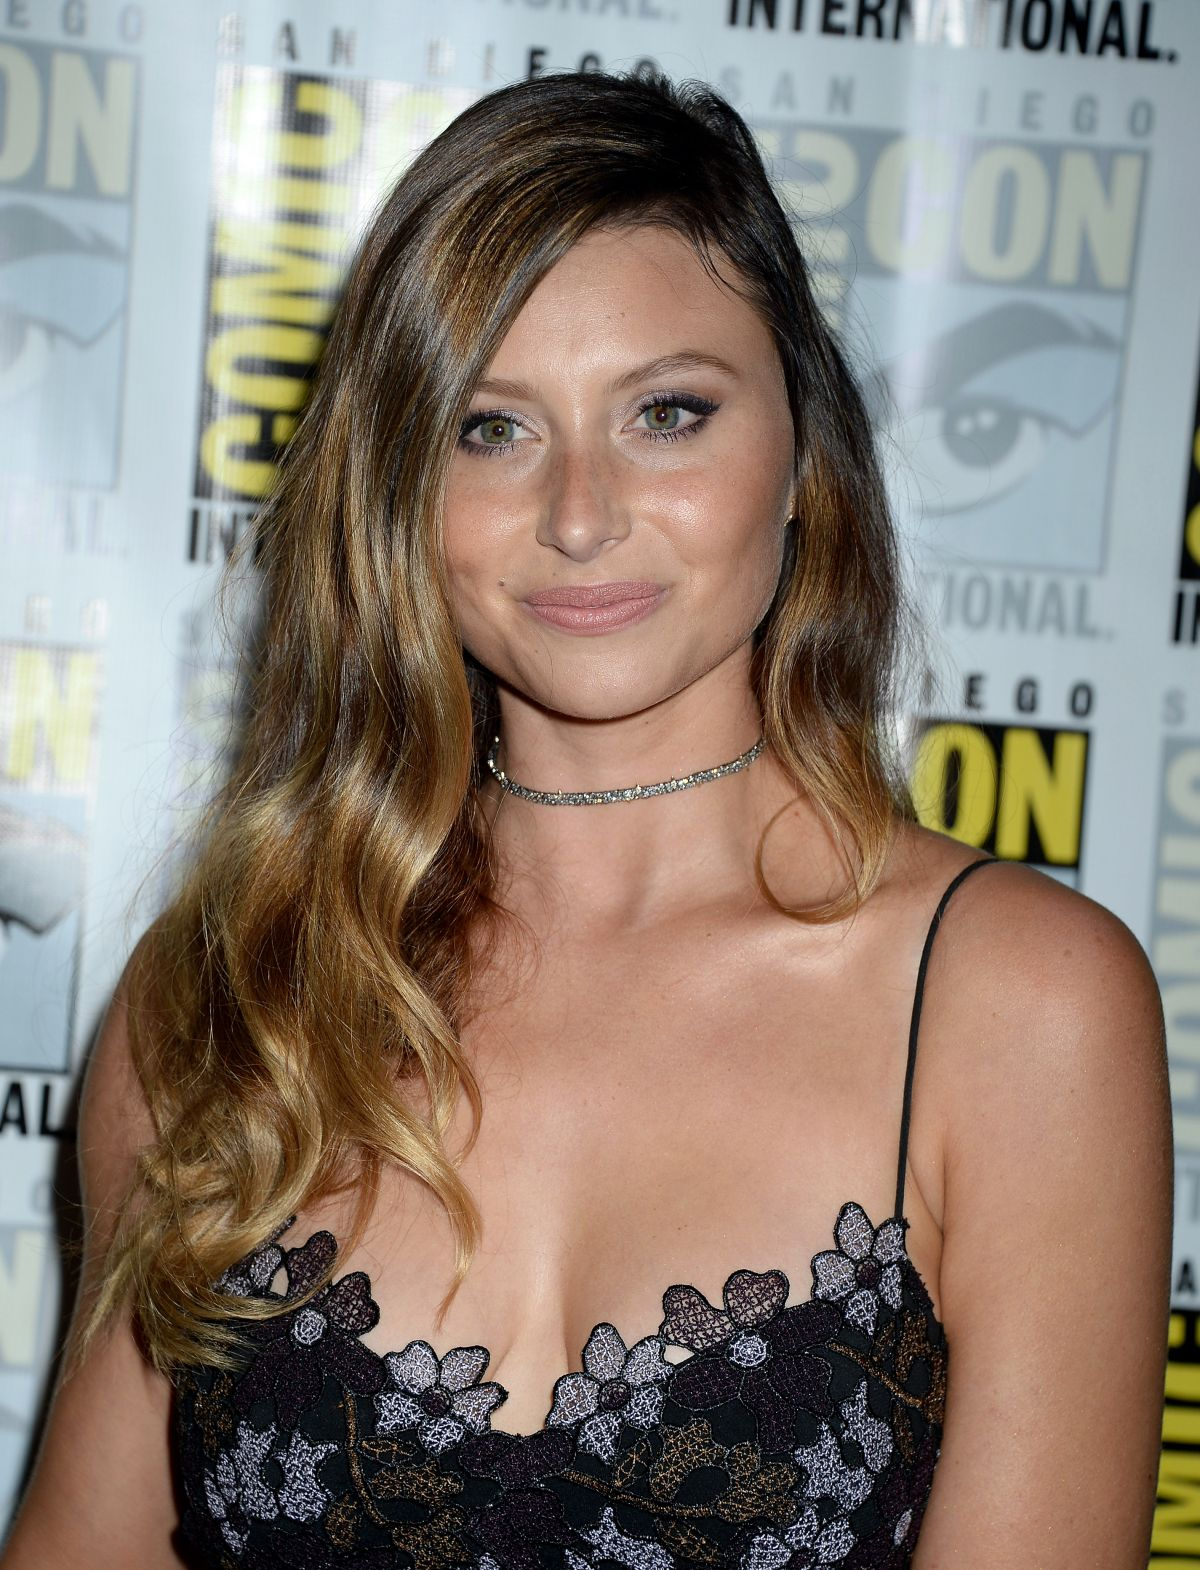 Alyson Aly Michalka Nude Photos 8